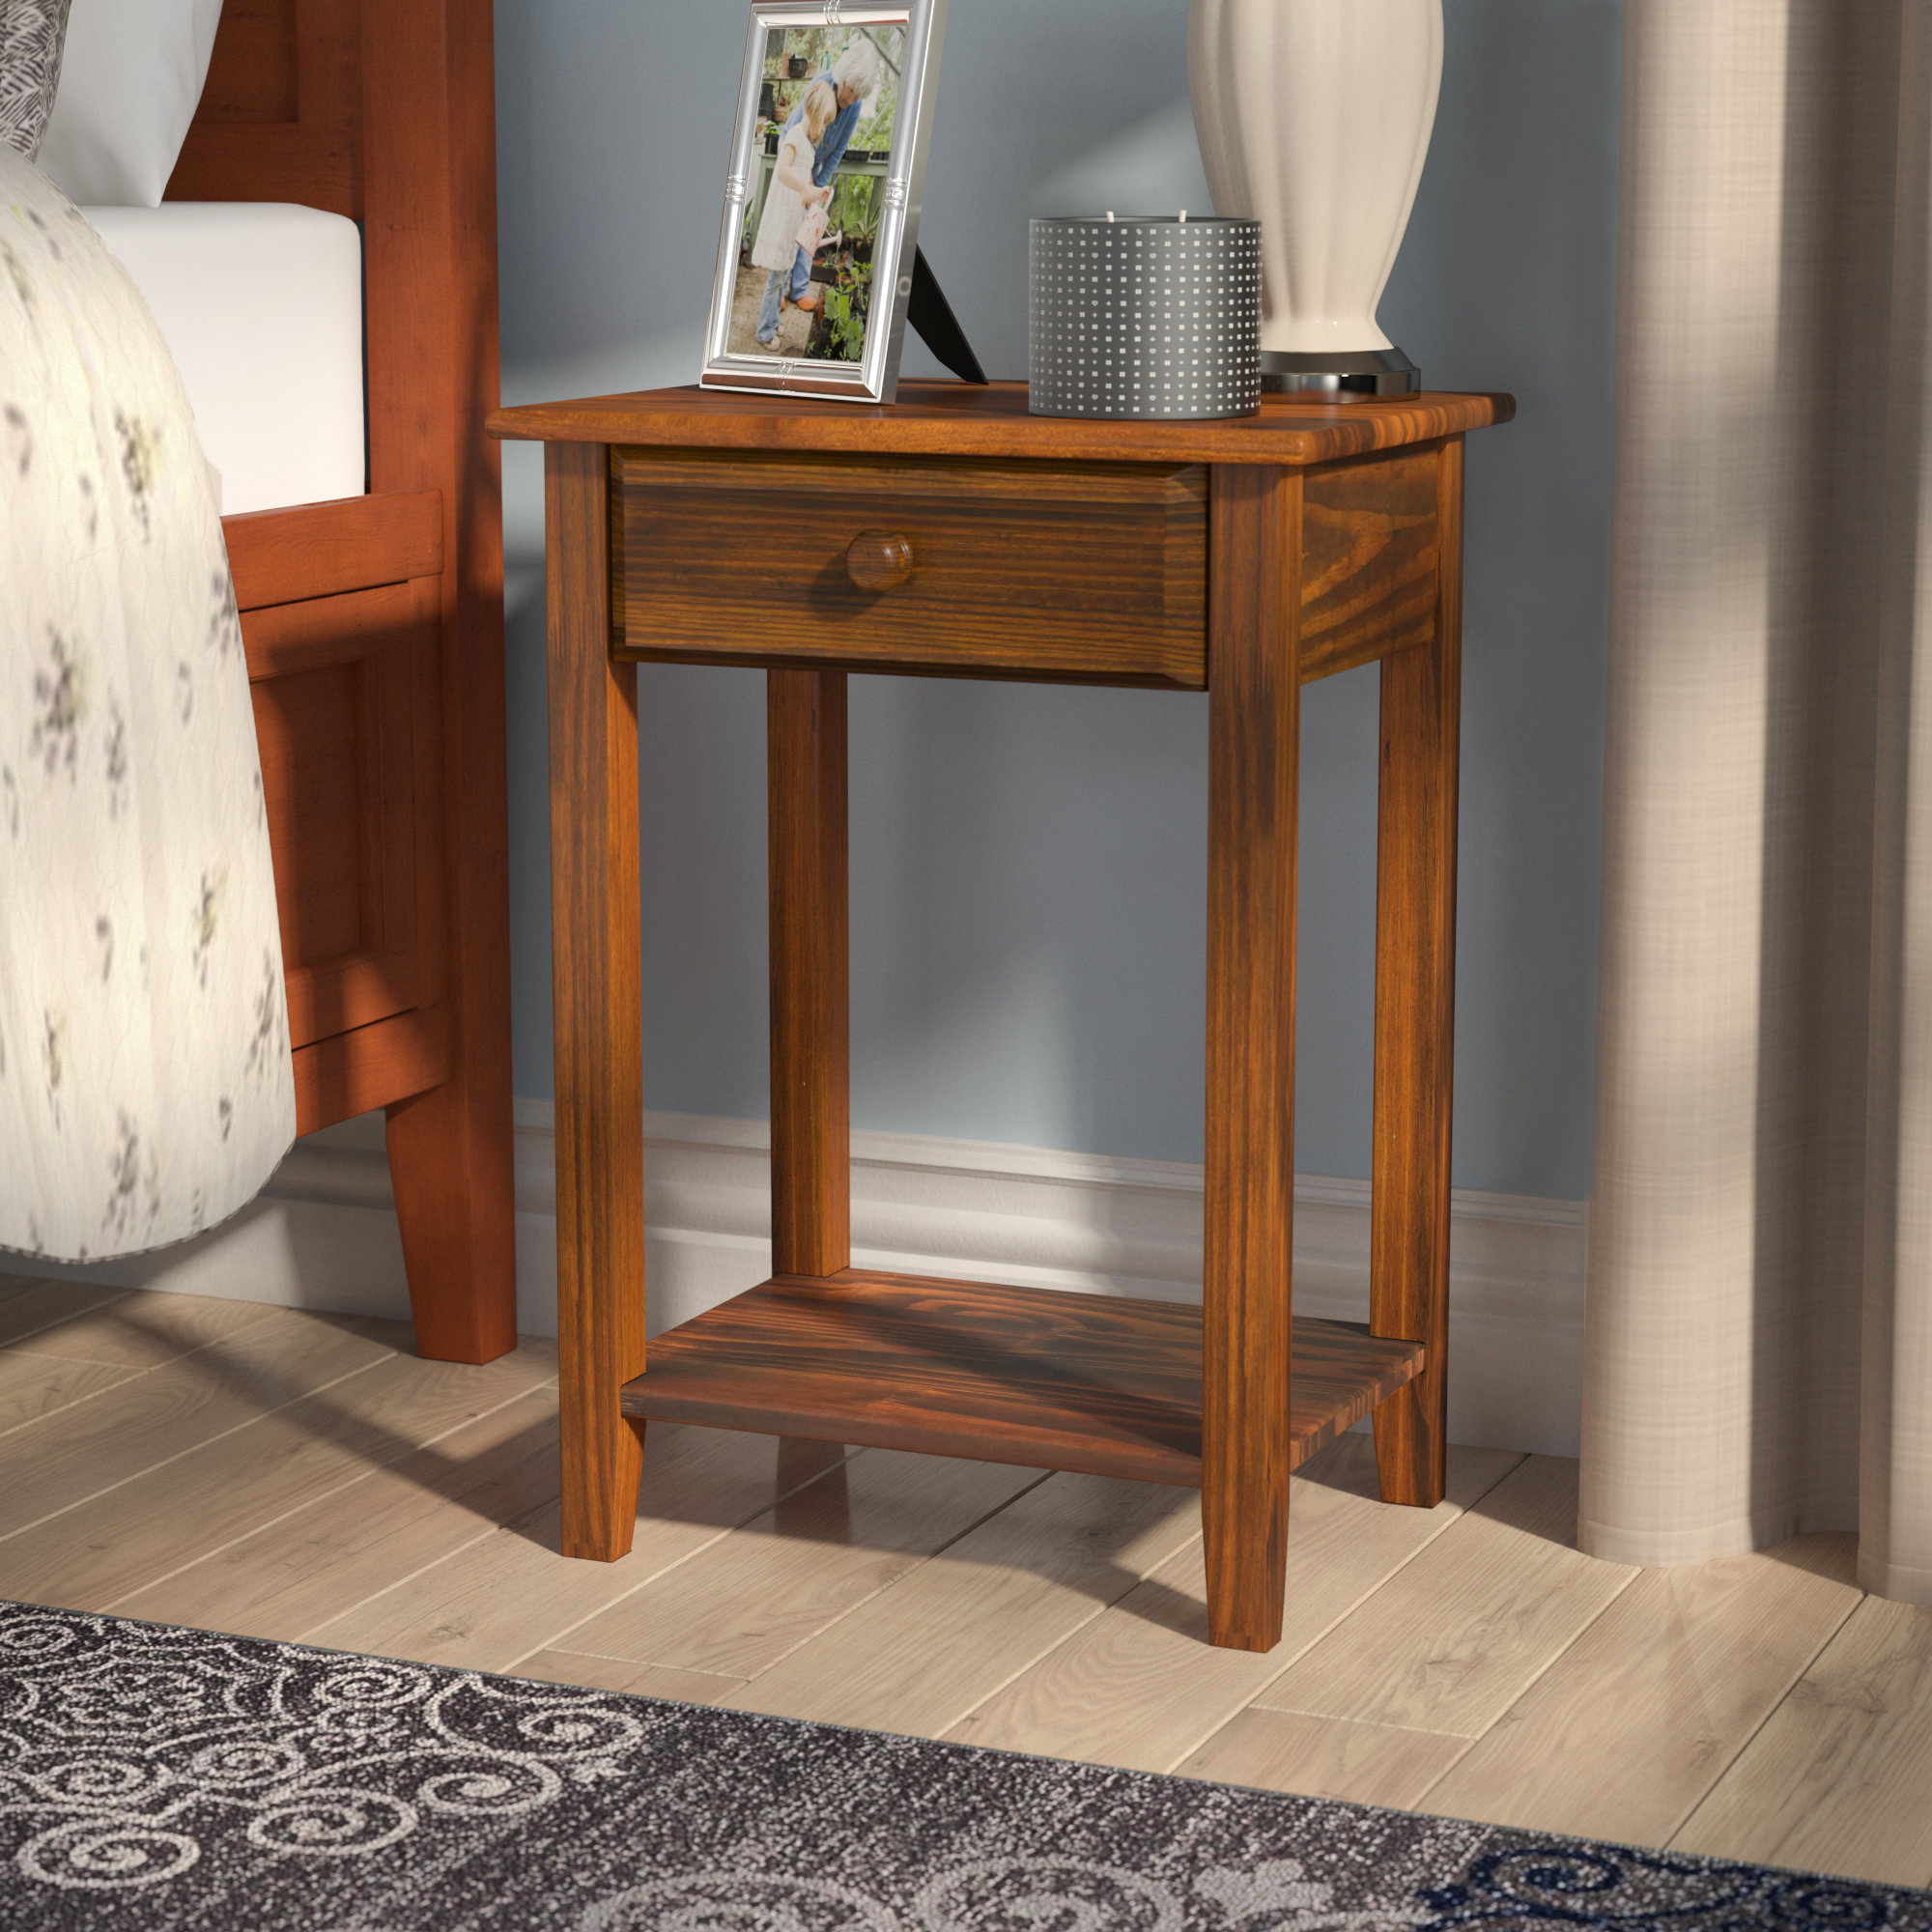 charlton home andress drawer nightstand reviews homer accent tables with charging station farmhouse coffee table set top furniture half moon mirrored console west elm outdoor